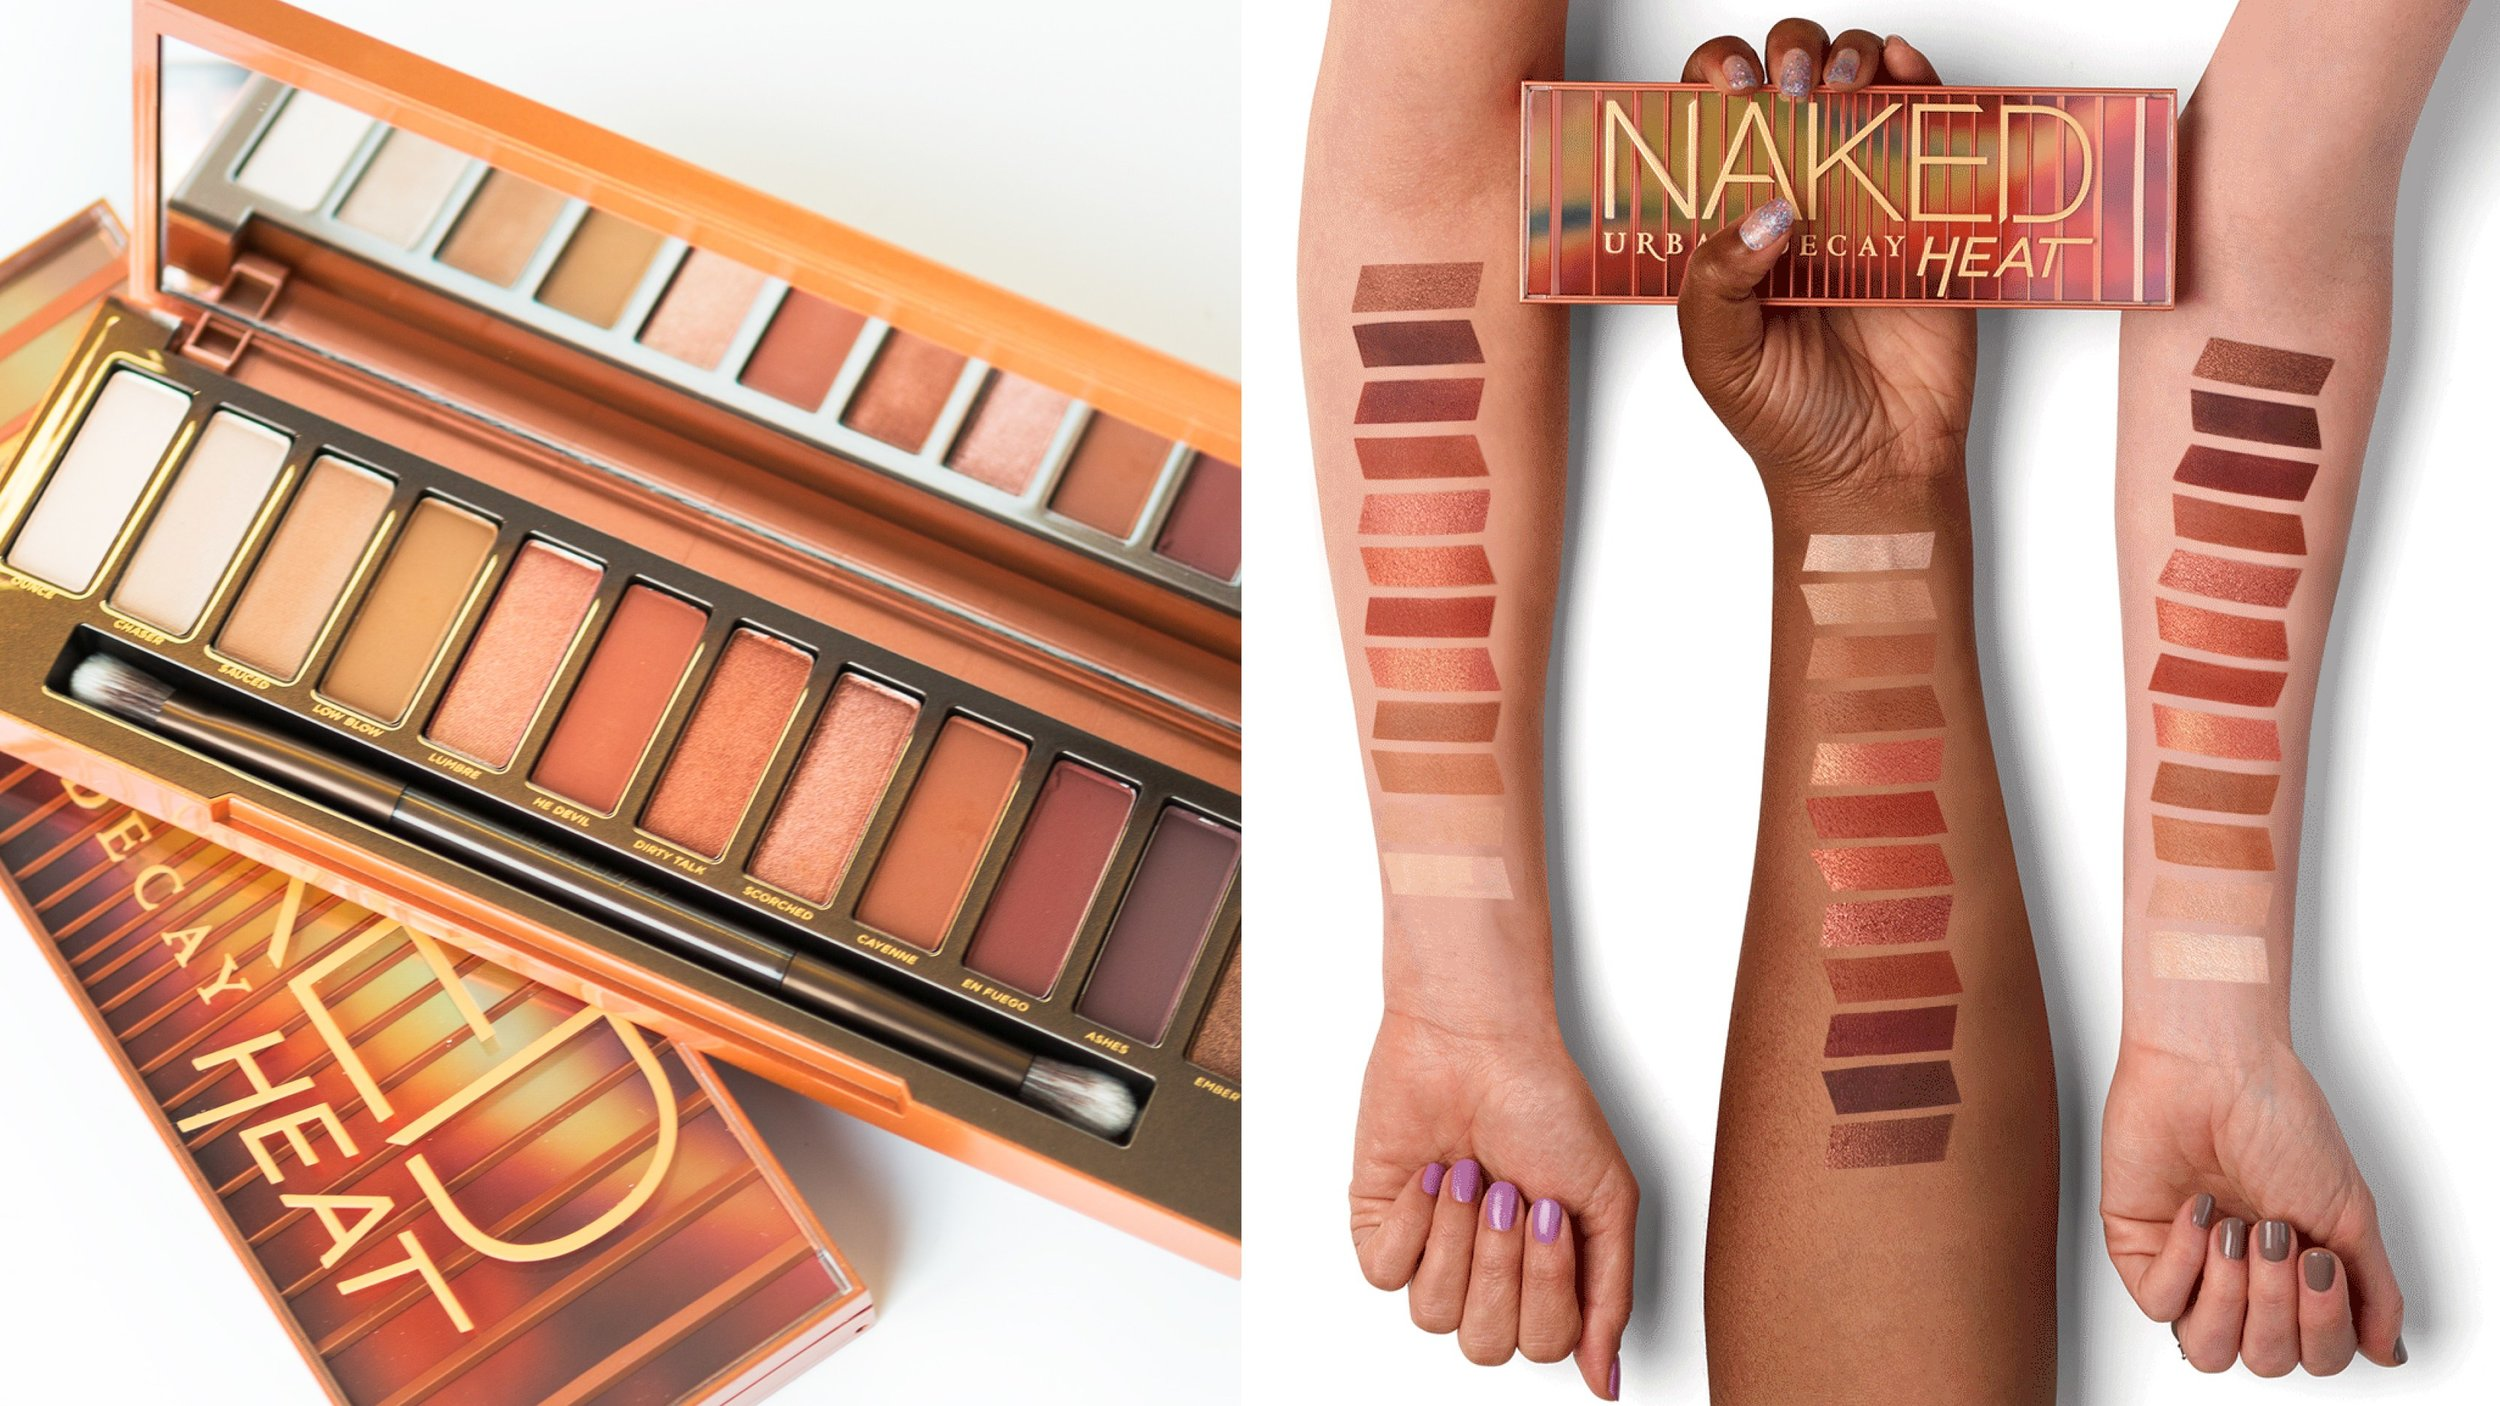 Naked Heat can be found at Ulta, Sephora, or Department stores for $54.